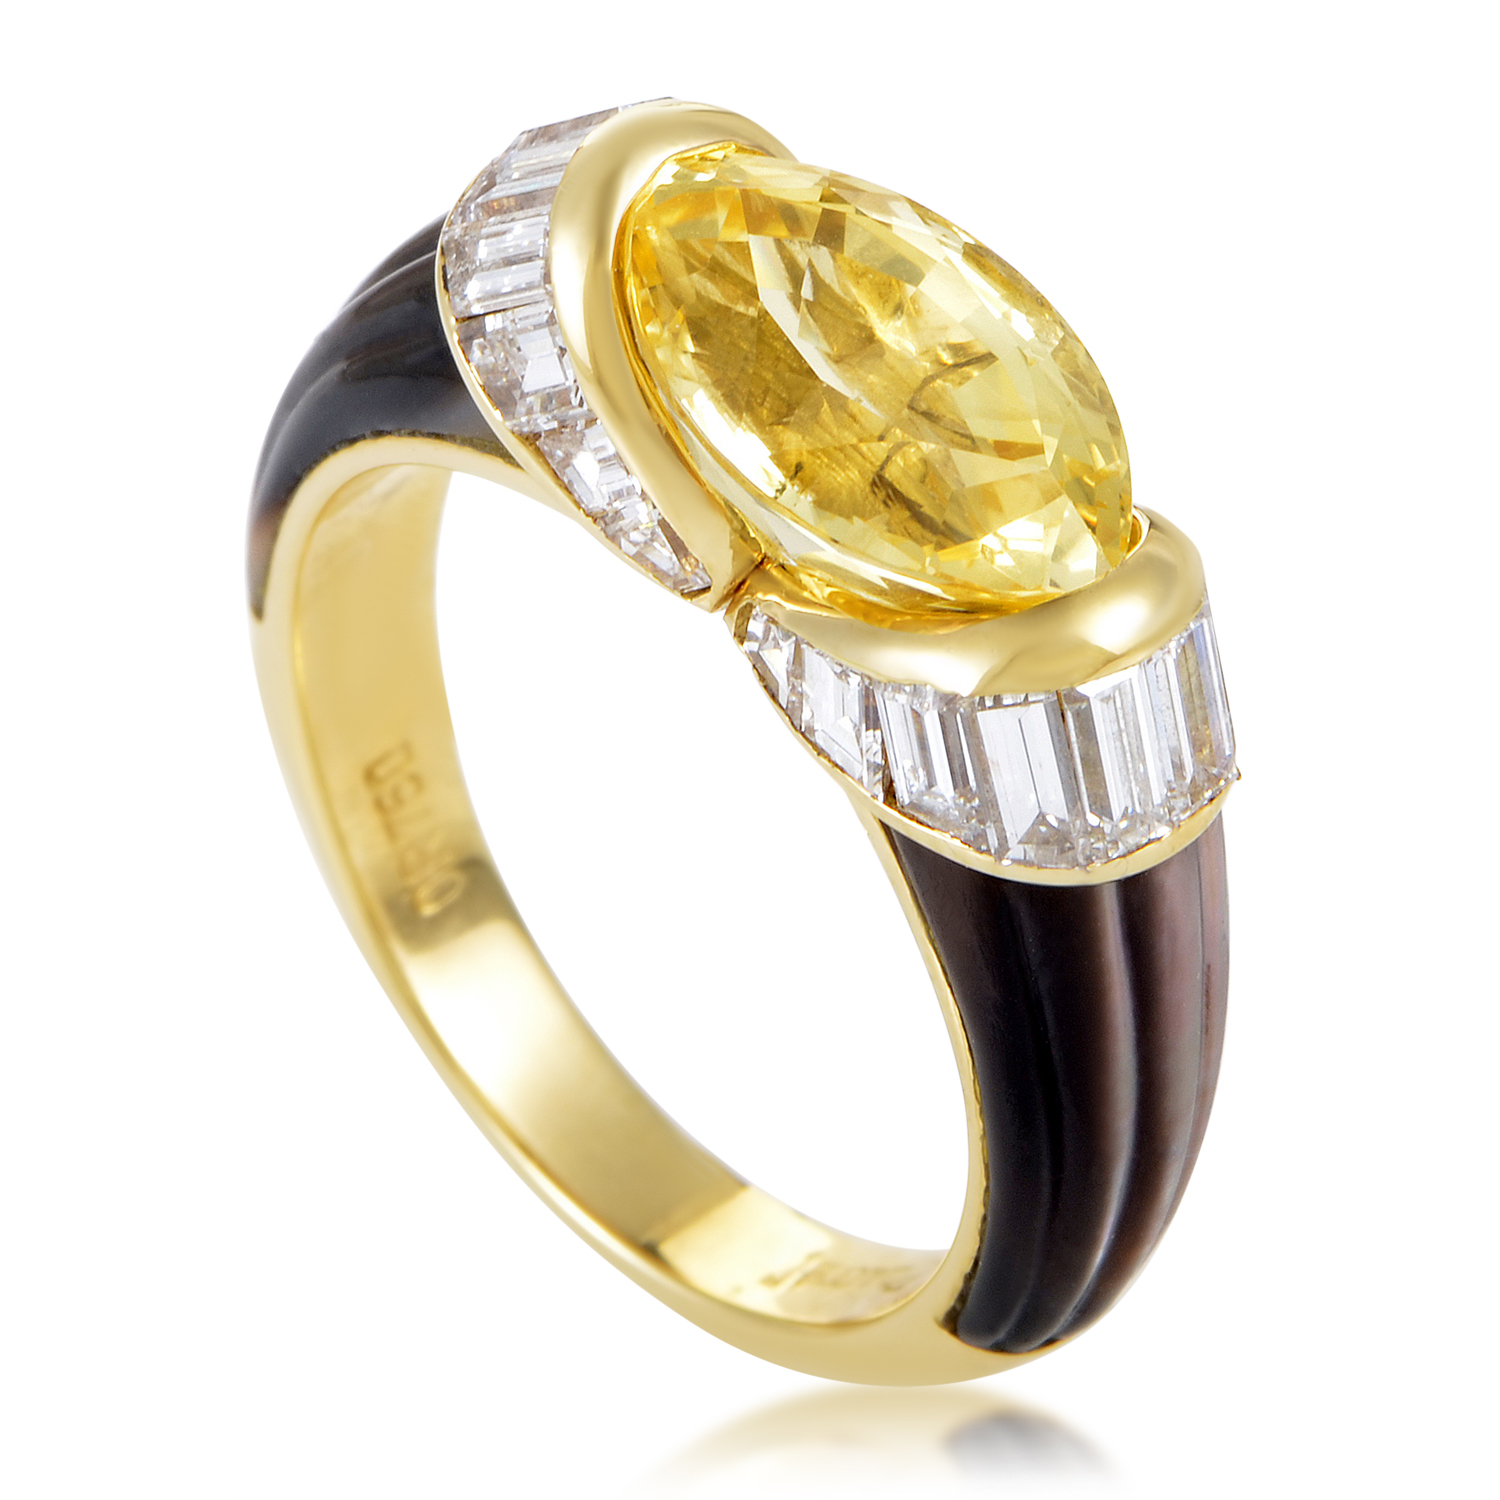 Piaget Women's 18K Yellow Gold Yellow Sapphire & Diamond Mother of Pearl Ring